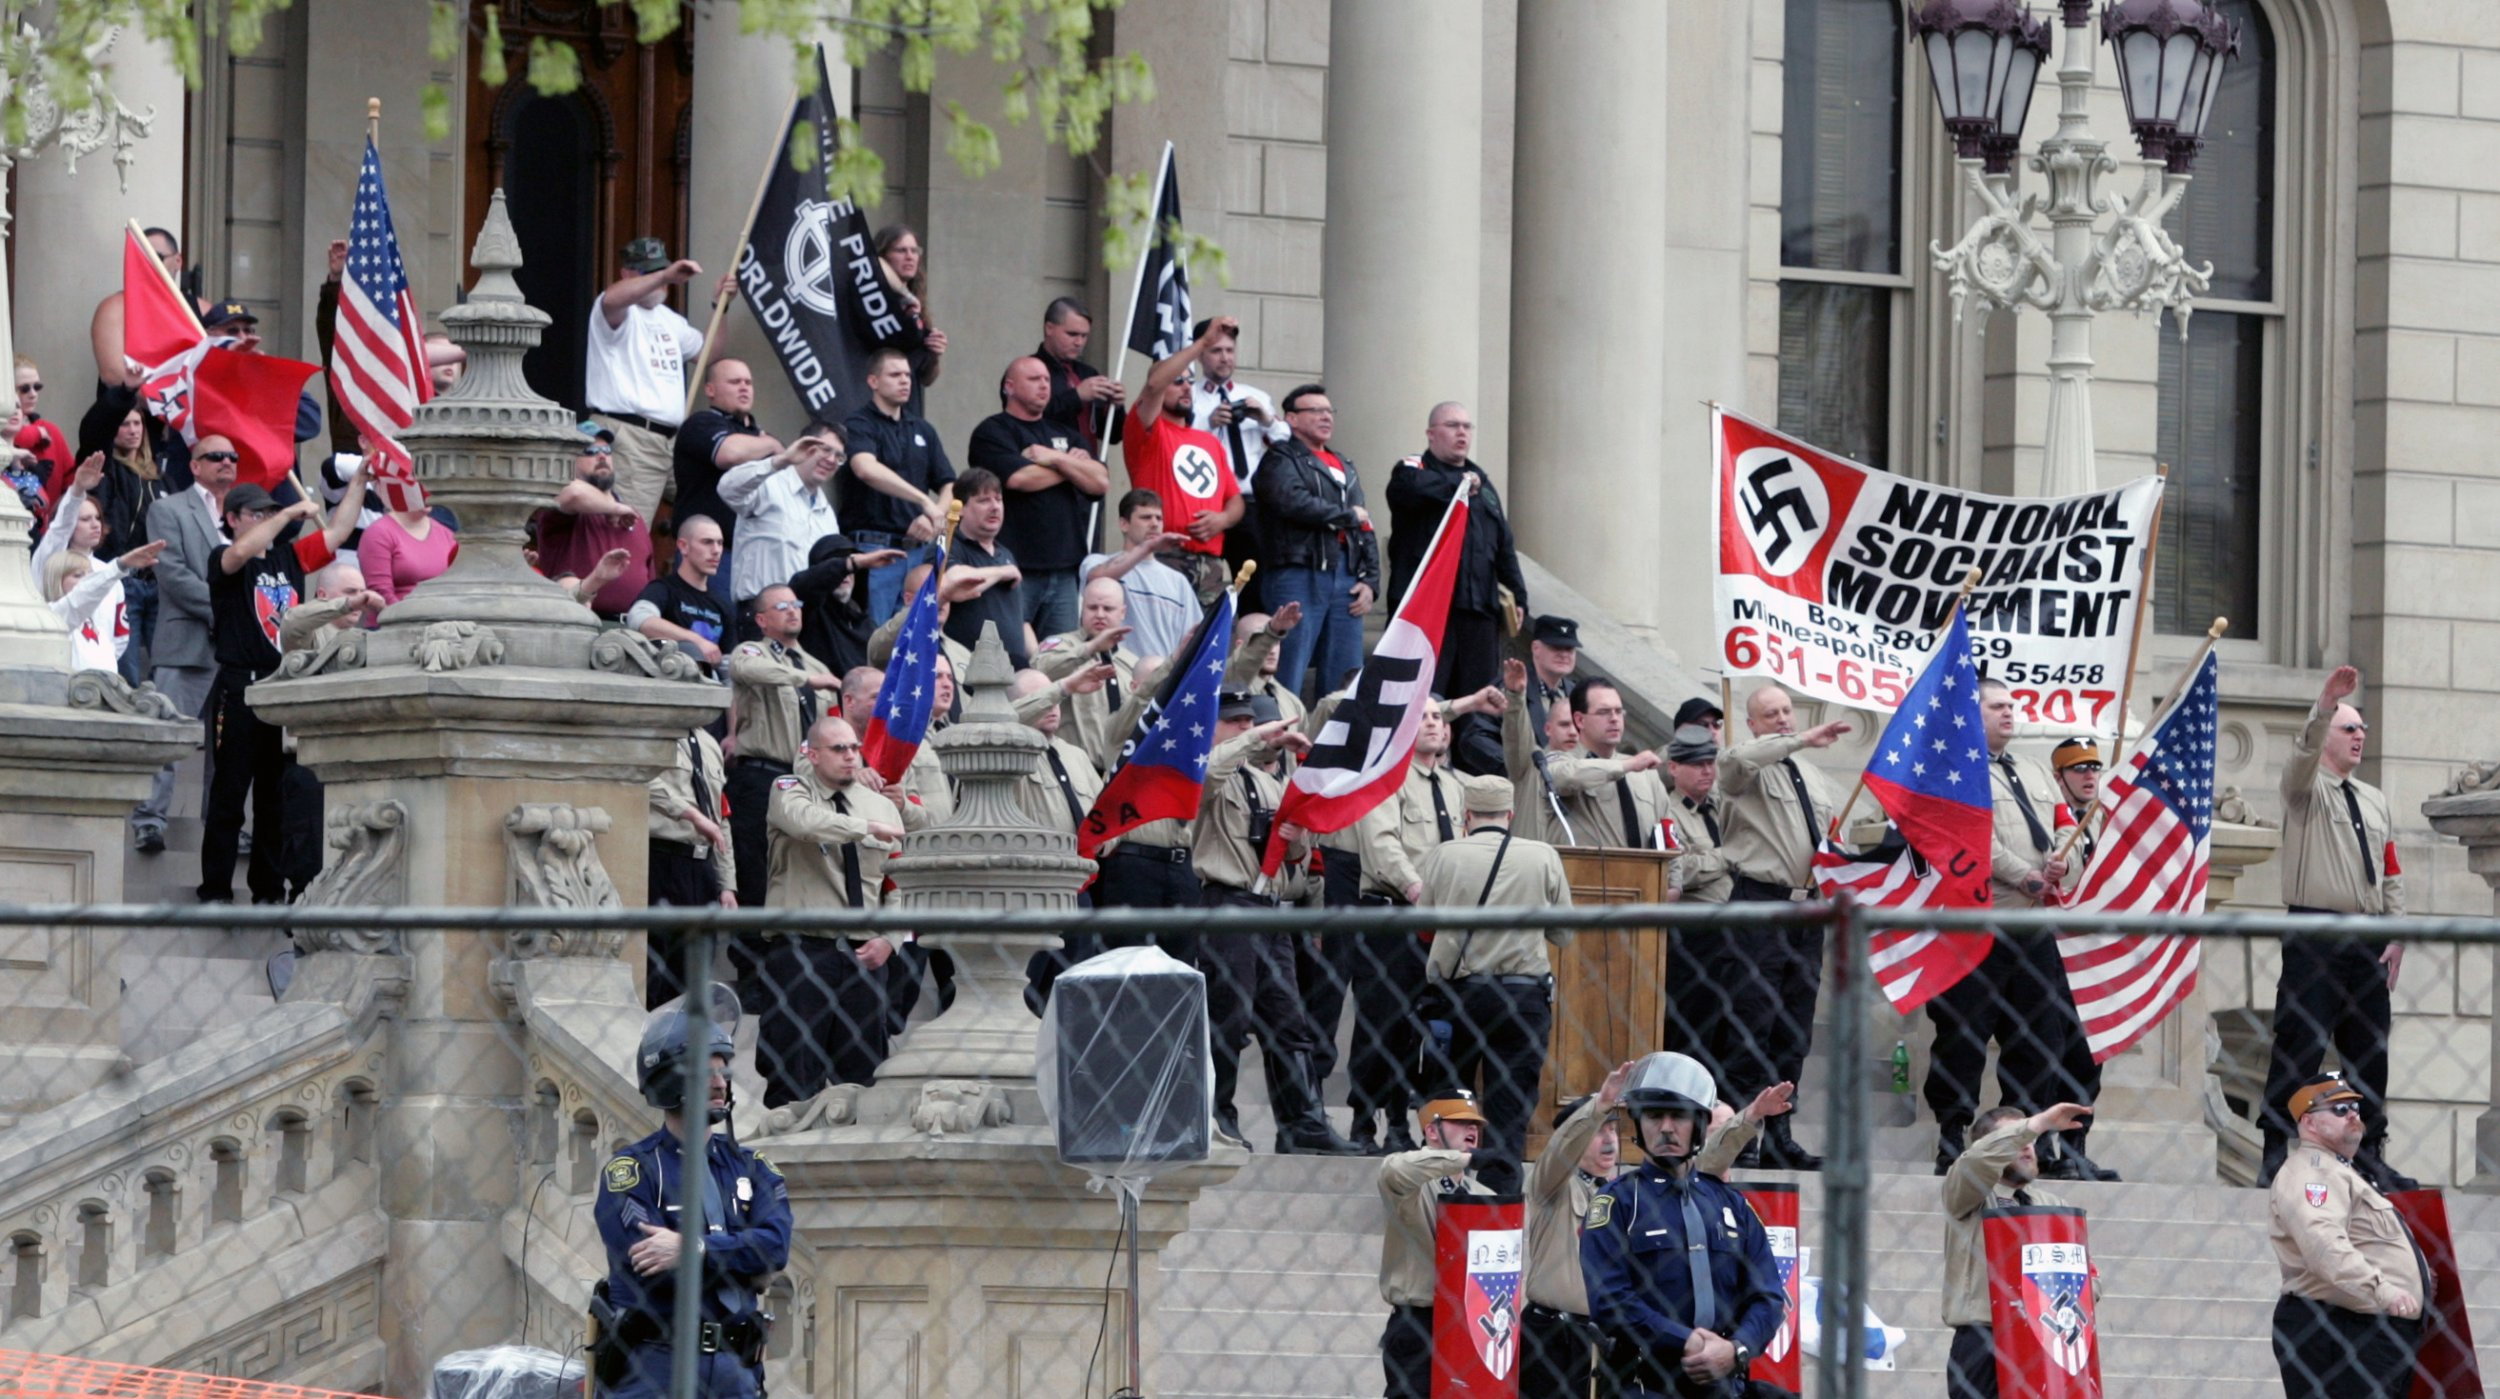 National Business Group On Health >> Neo-Nazis March in Georgia To Mark Hitler's Birthday